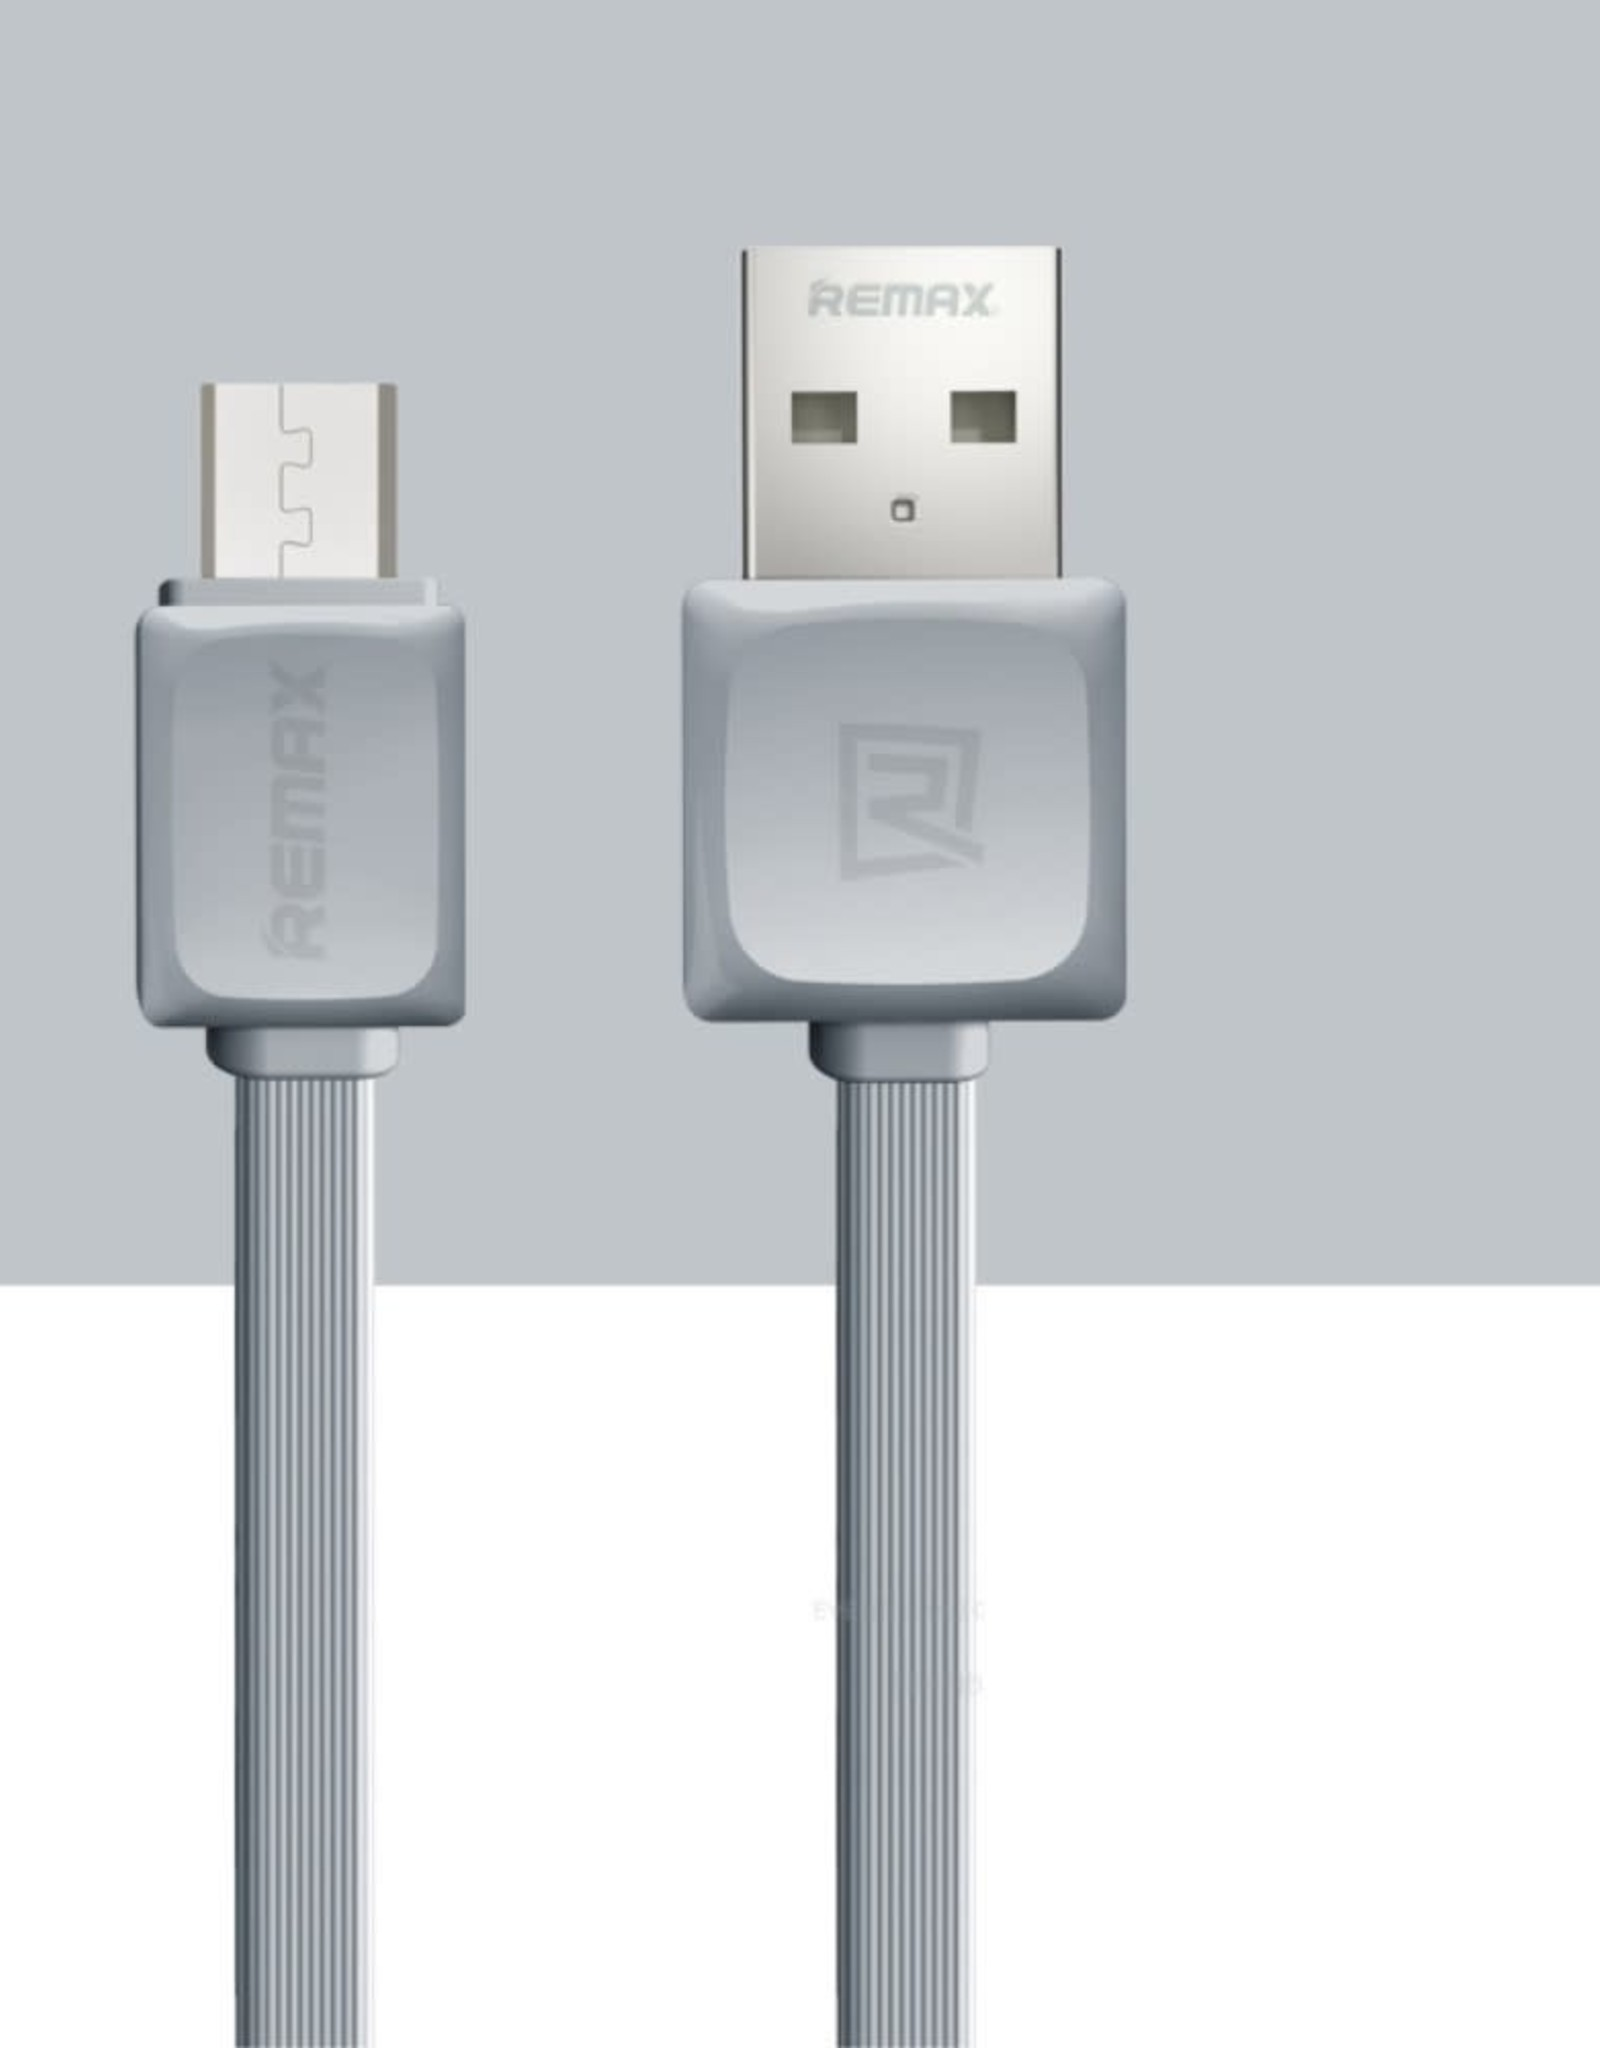 REMAX Fast Data Charging Cable Micro USB Cord - Grey